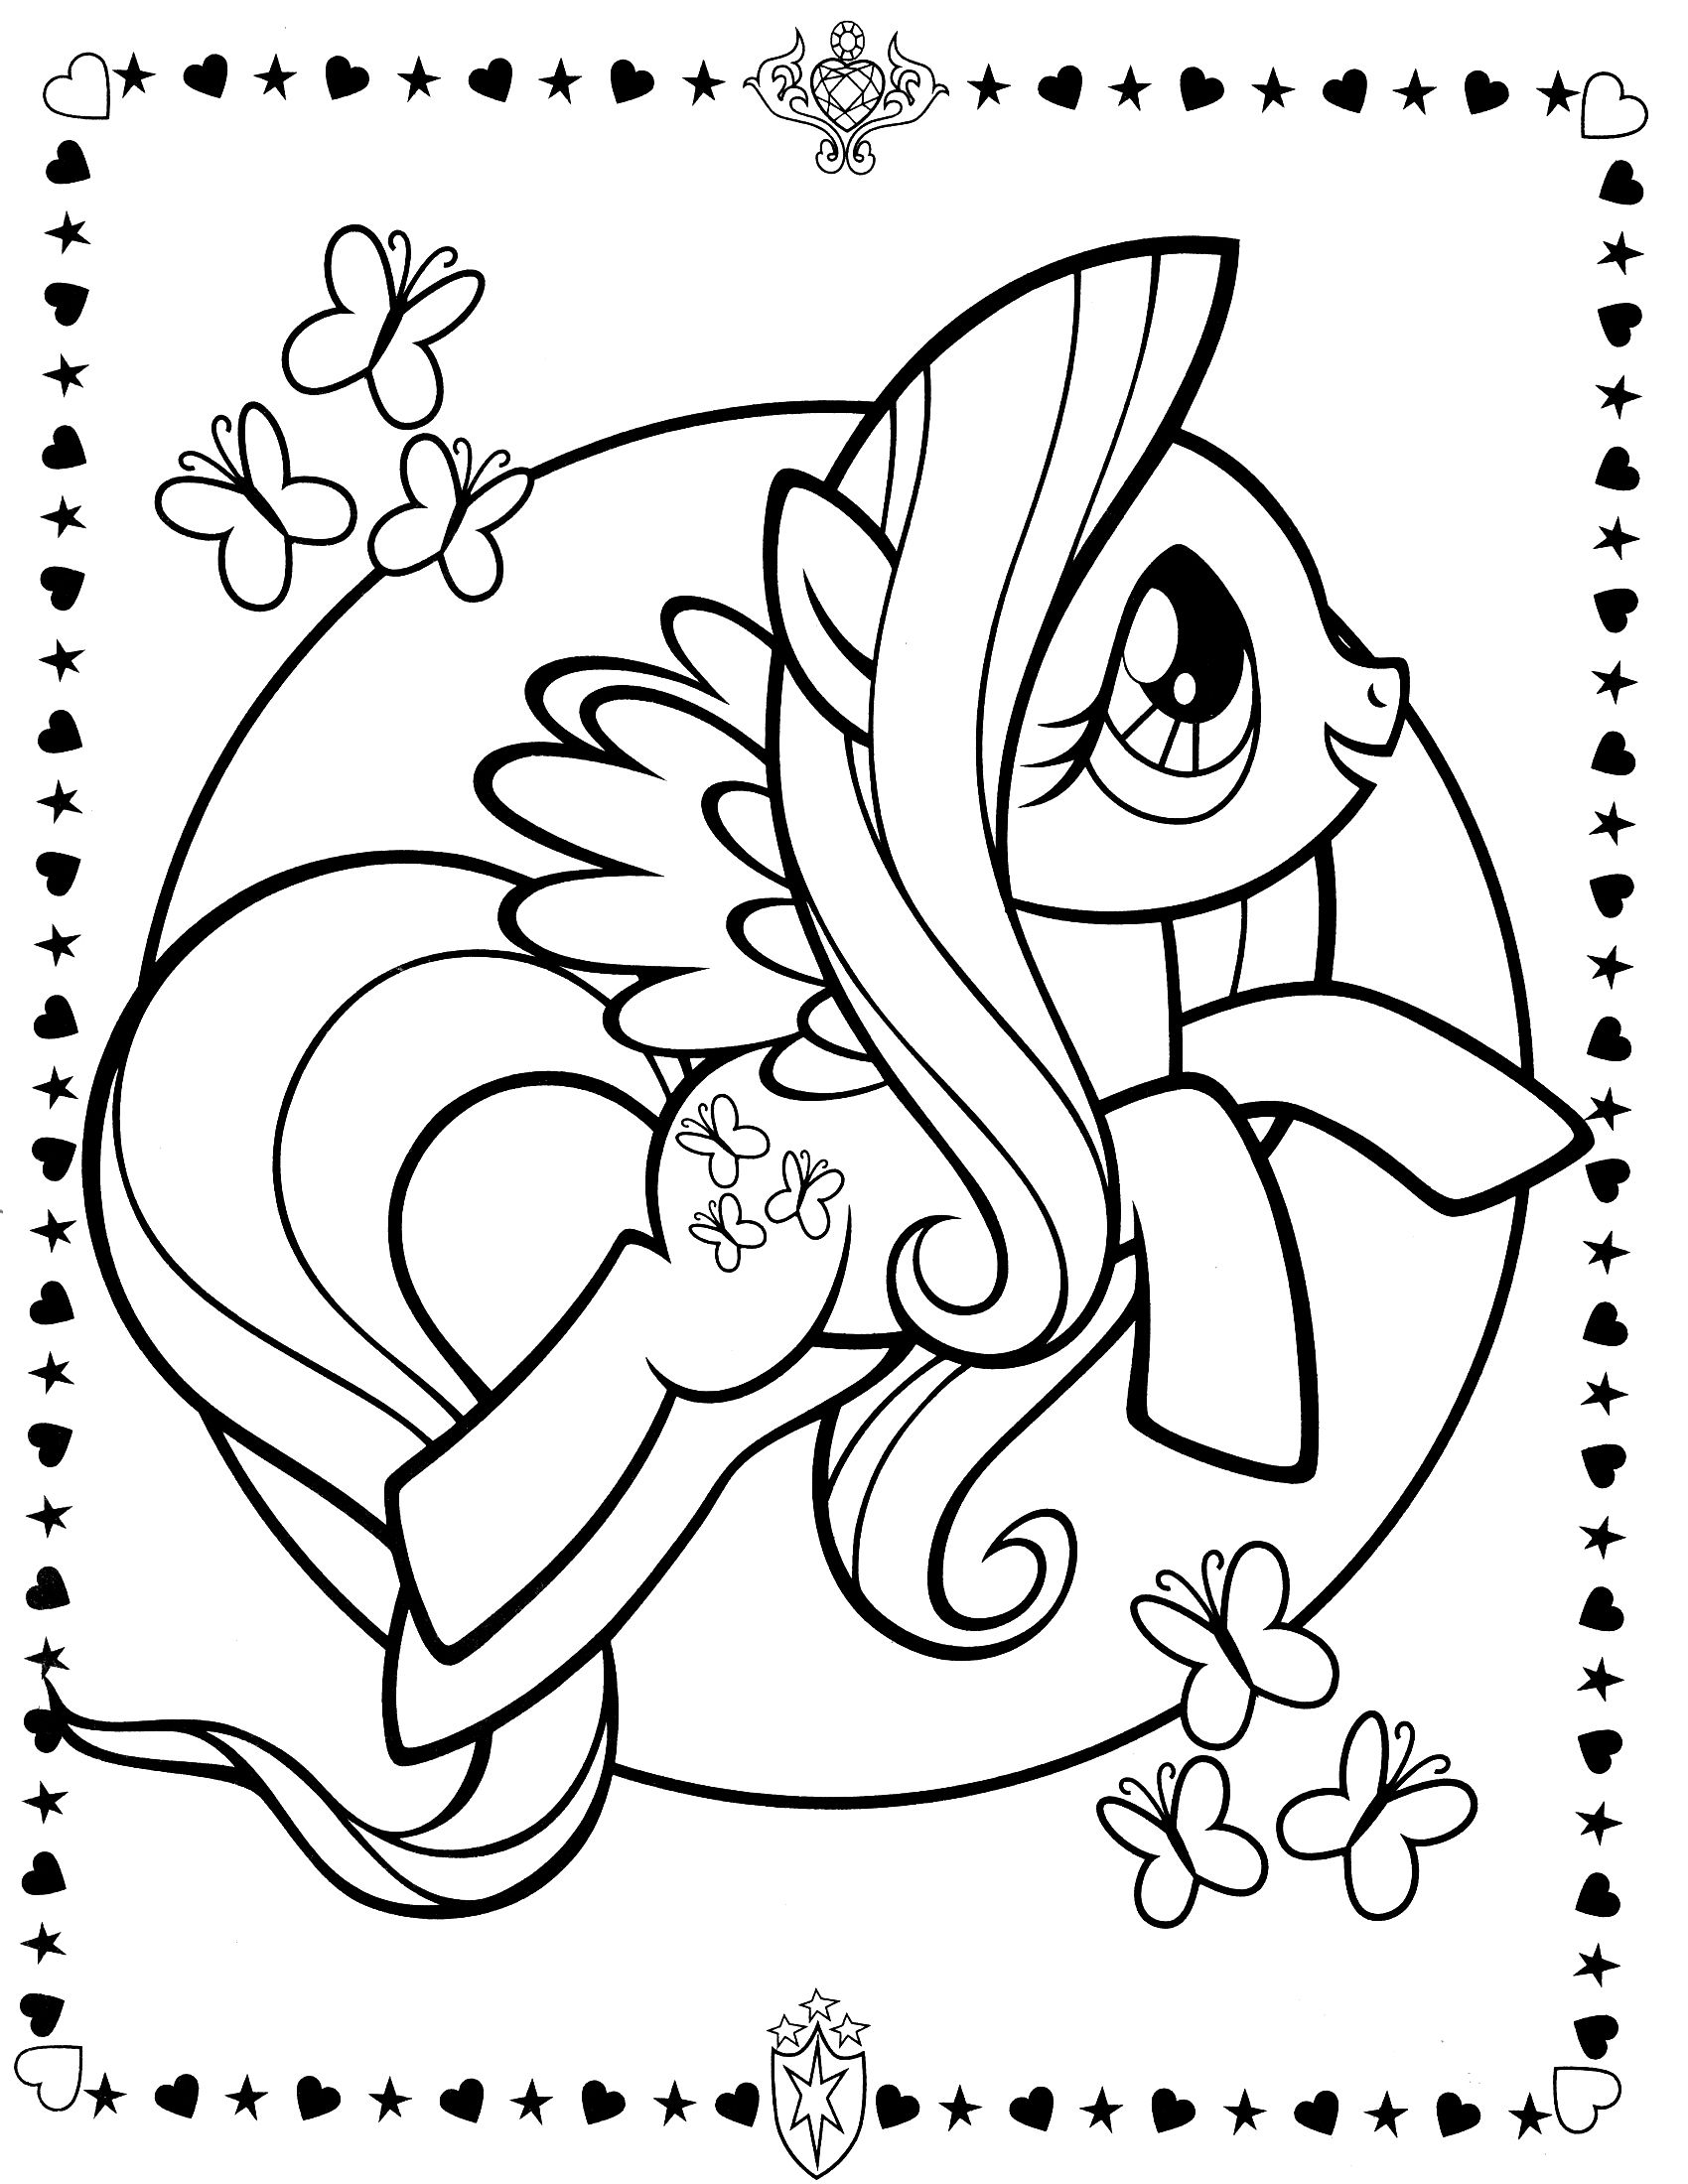 My little pony coloring pages youtube - My Little Pony Coloring Pages Of Fluttershy My Little Pony Coloring Pages Yahoo Image Search